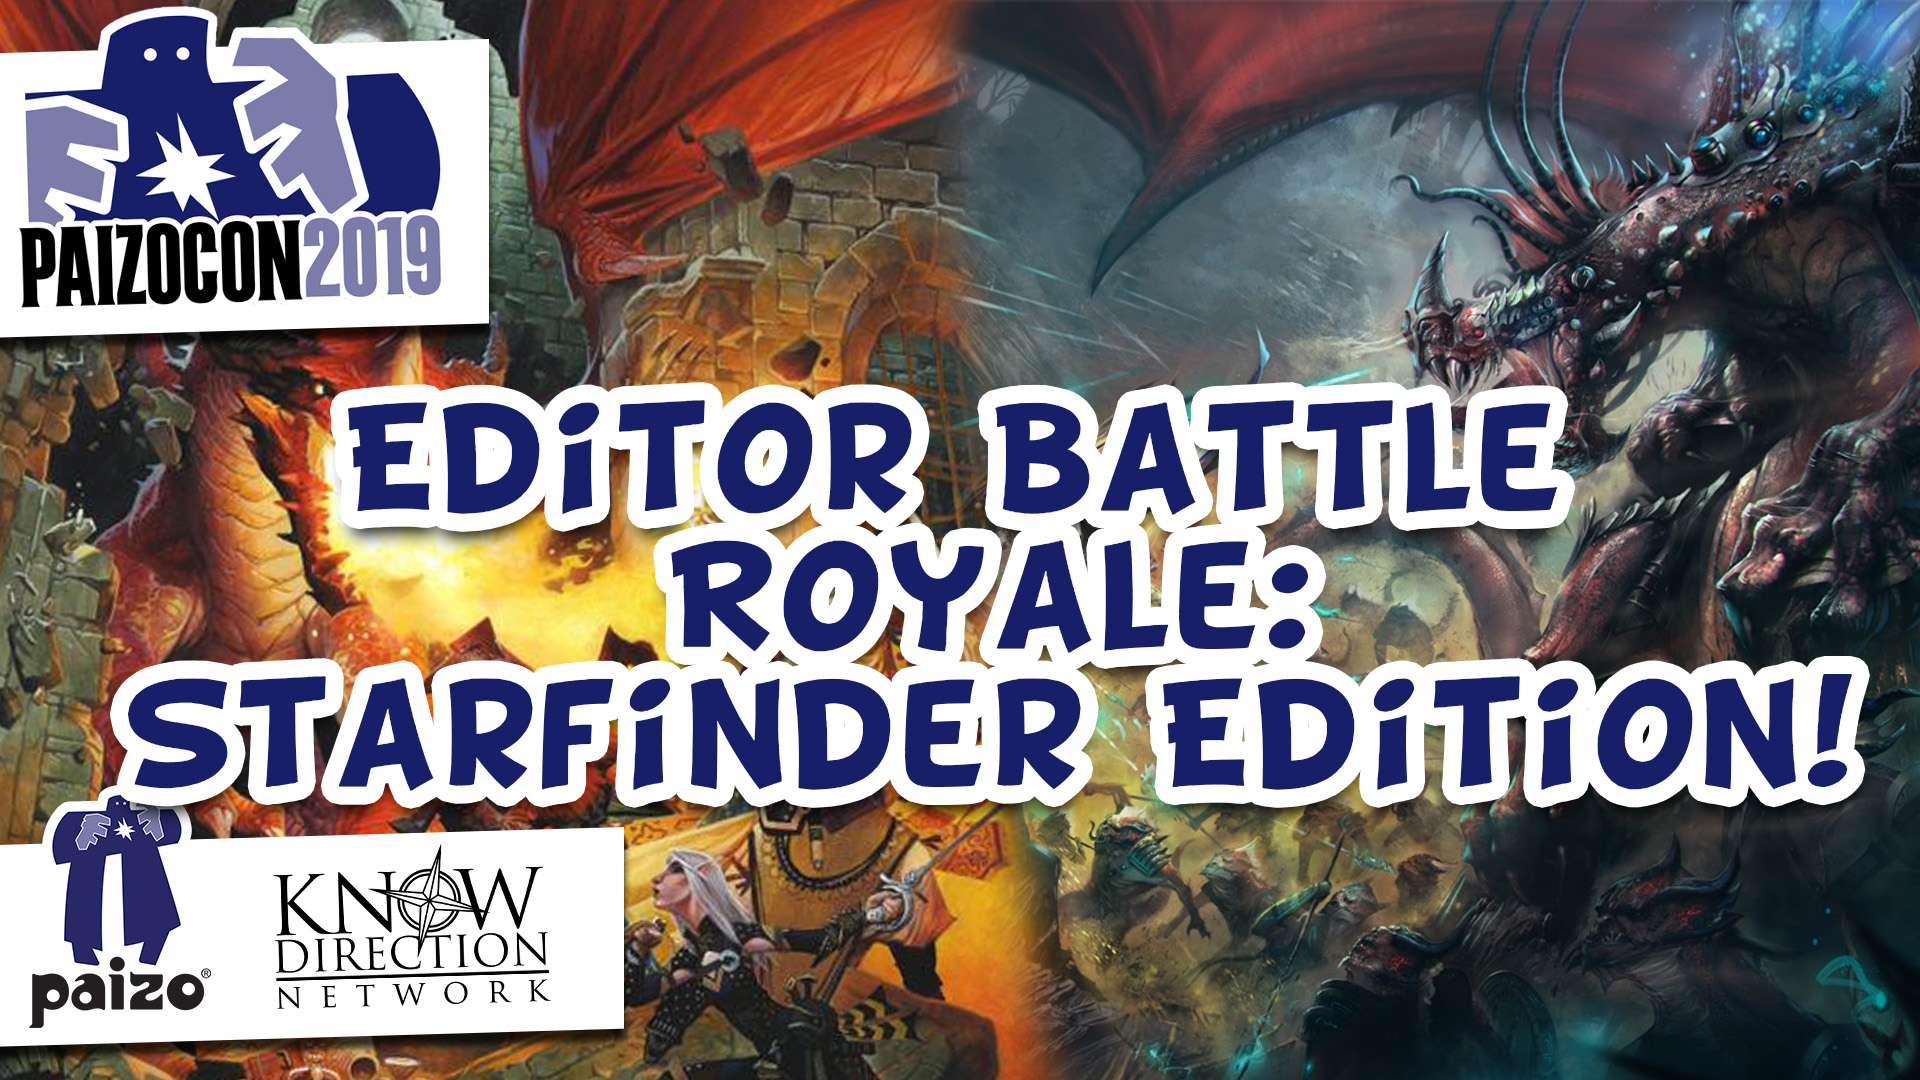 Editor Battle Royale: Starfinder Edition!